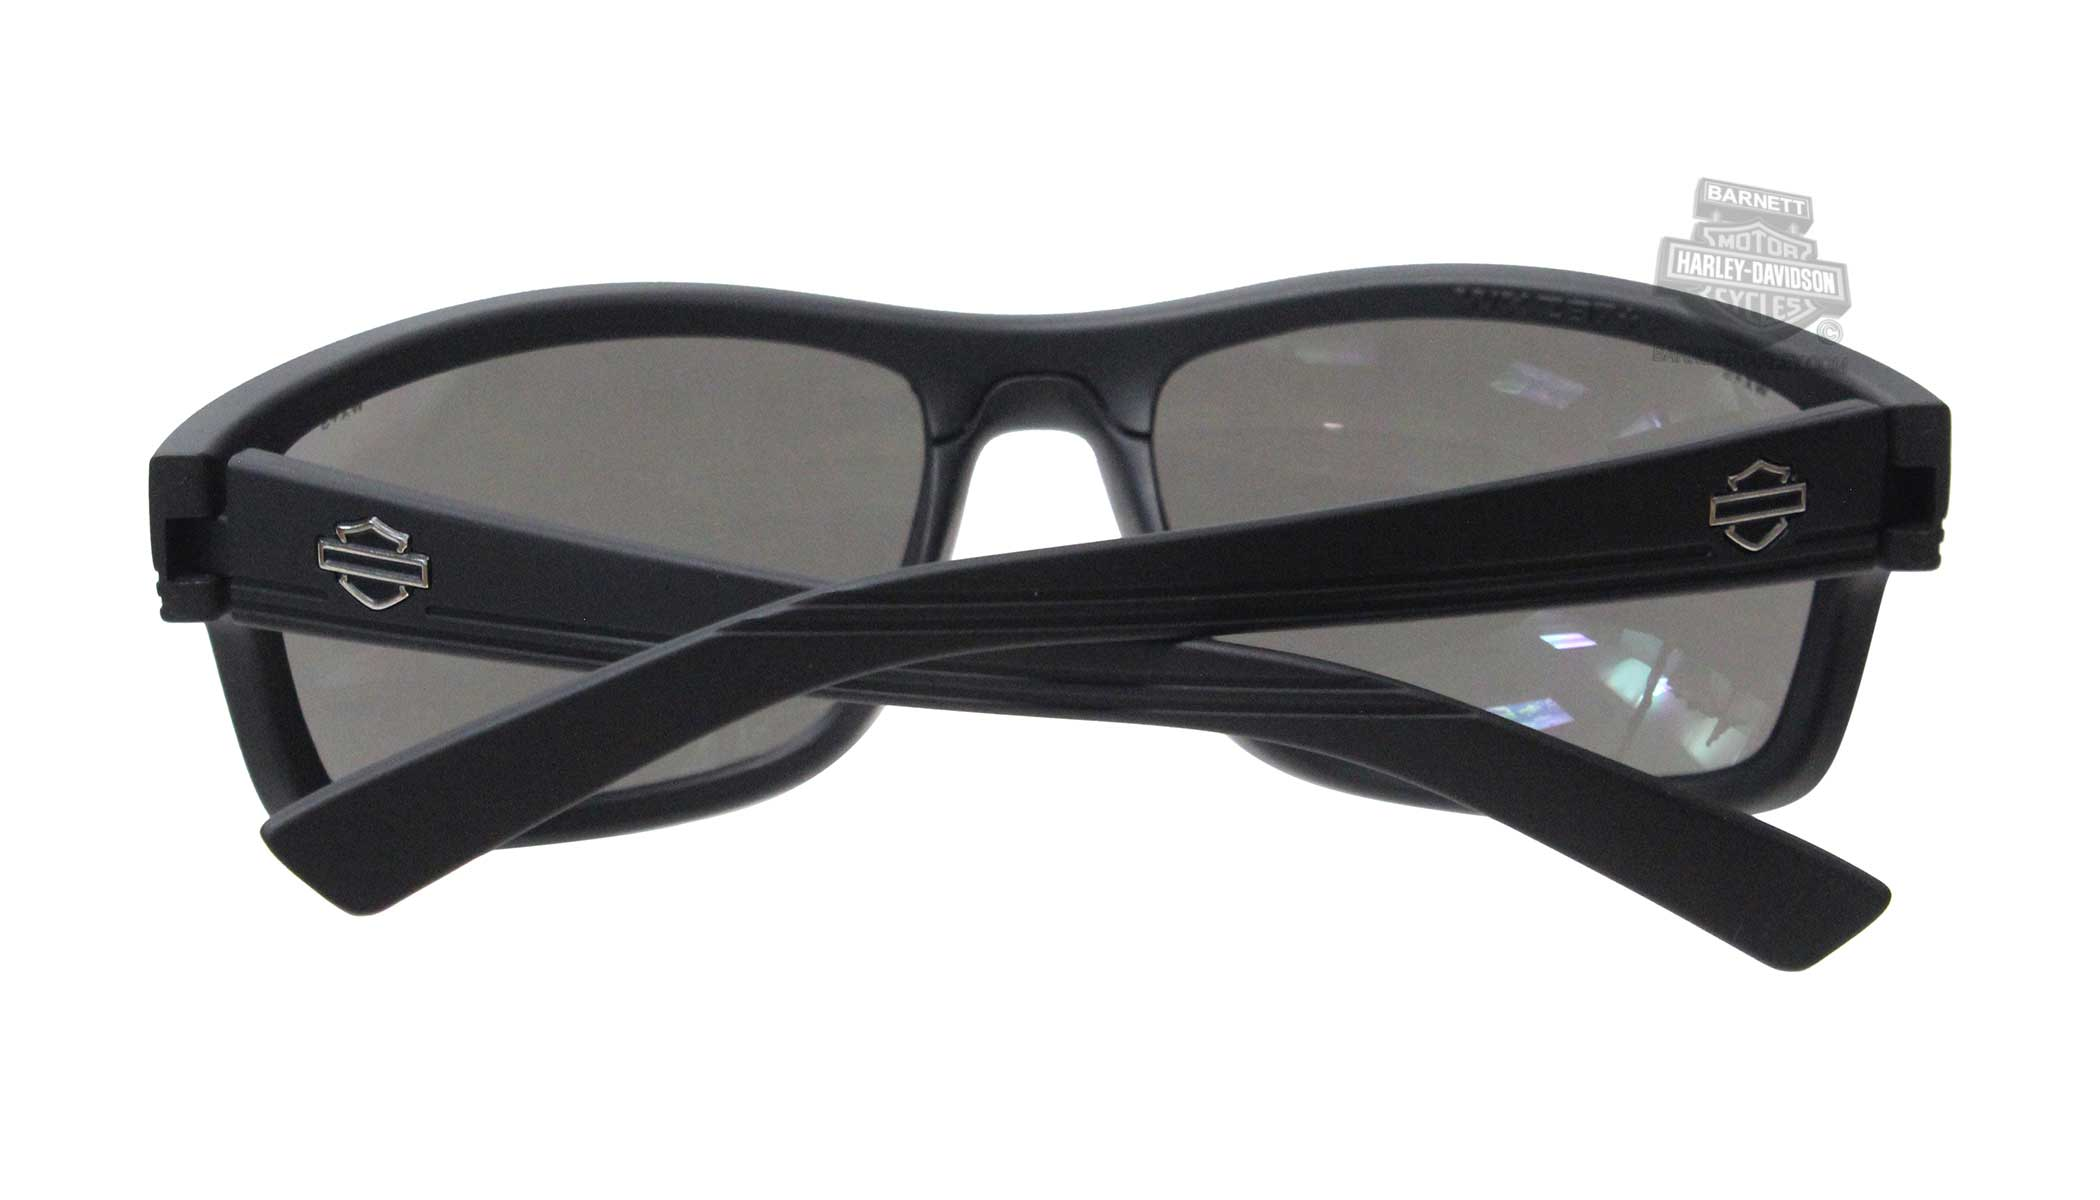 b63147ae4ce62 ... Harley-Davidson® HD Slick Smoke Grey Lens in a Matte Black Frame by Wiley  X® Sunglasses. Tap to expand